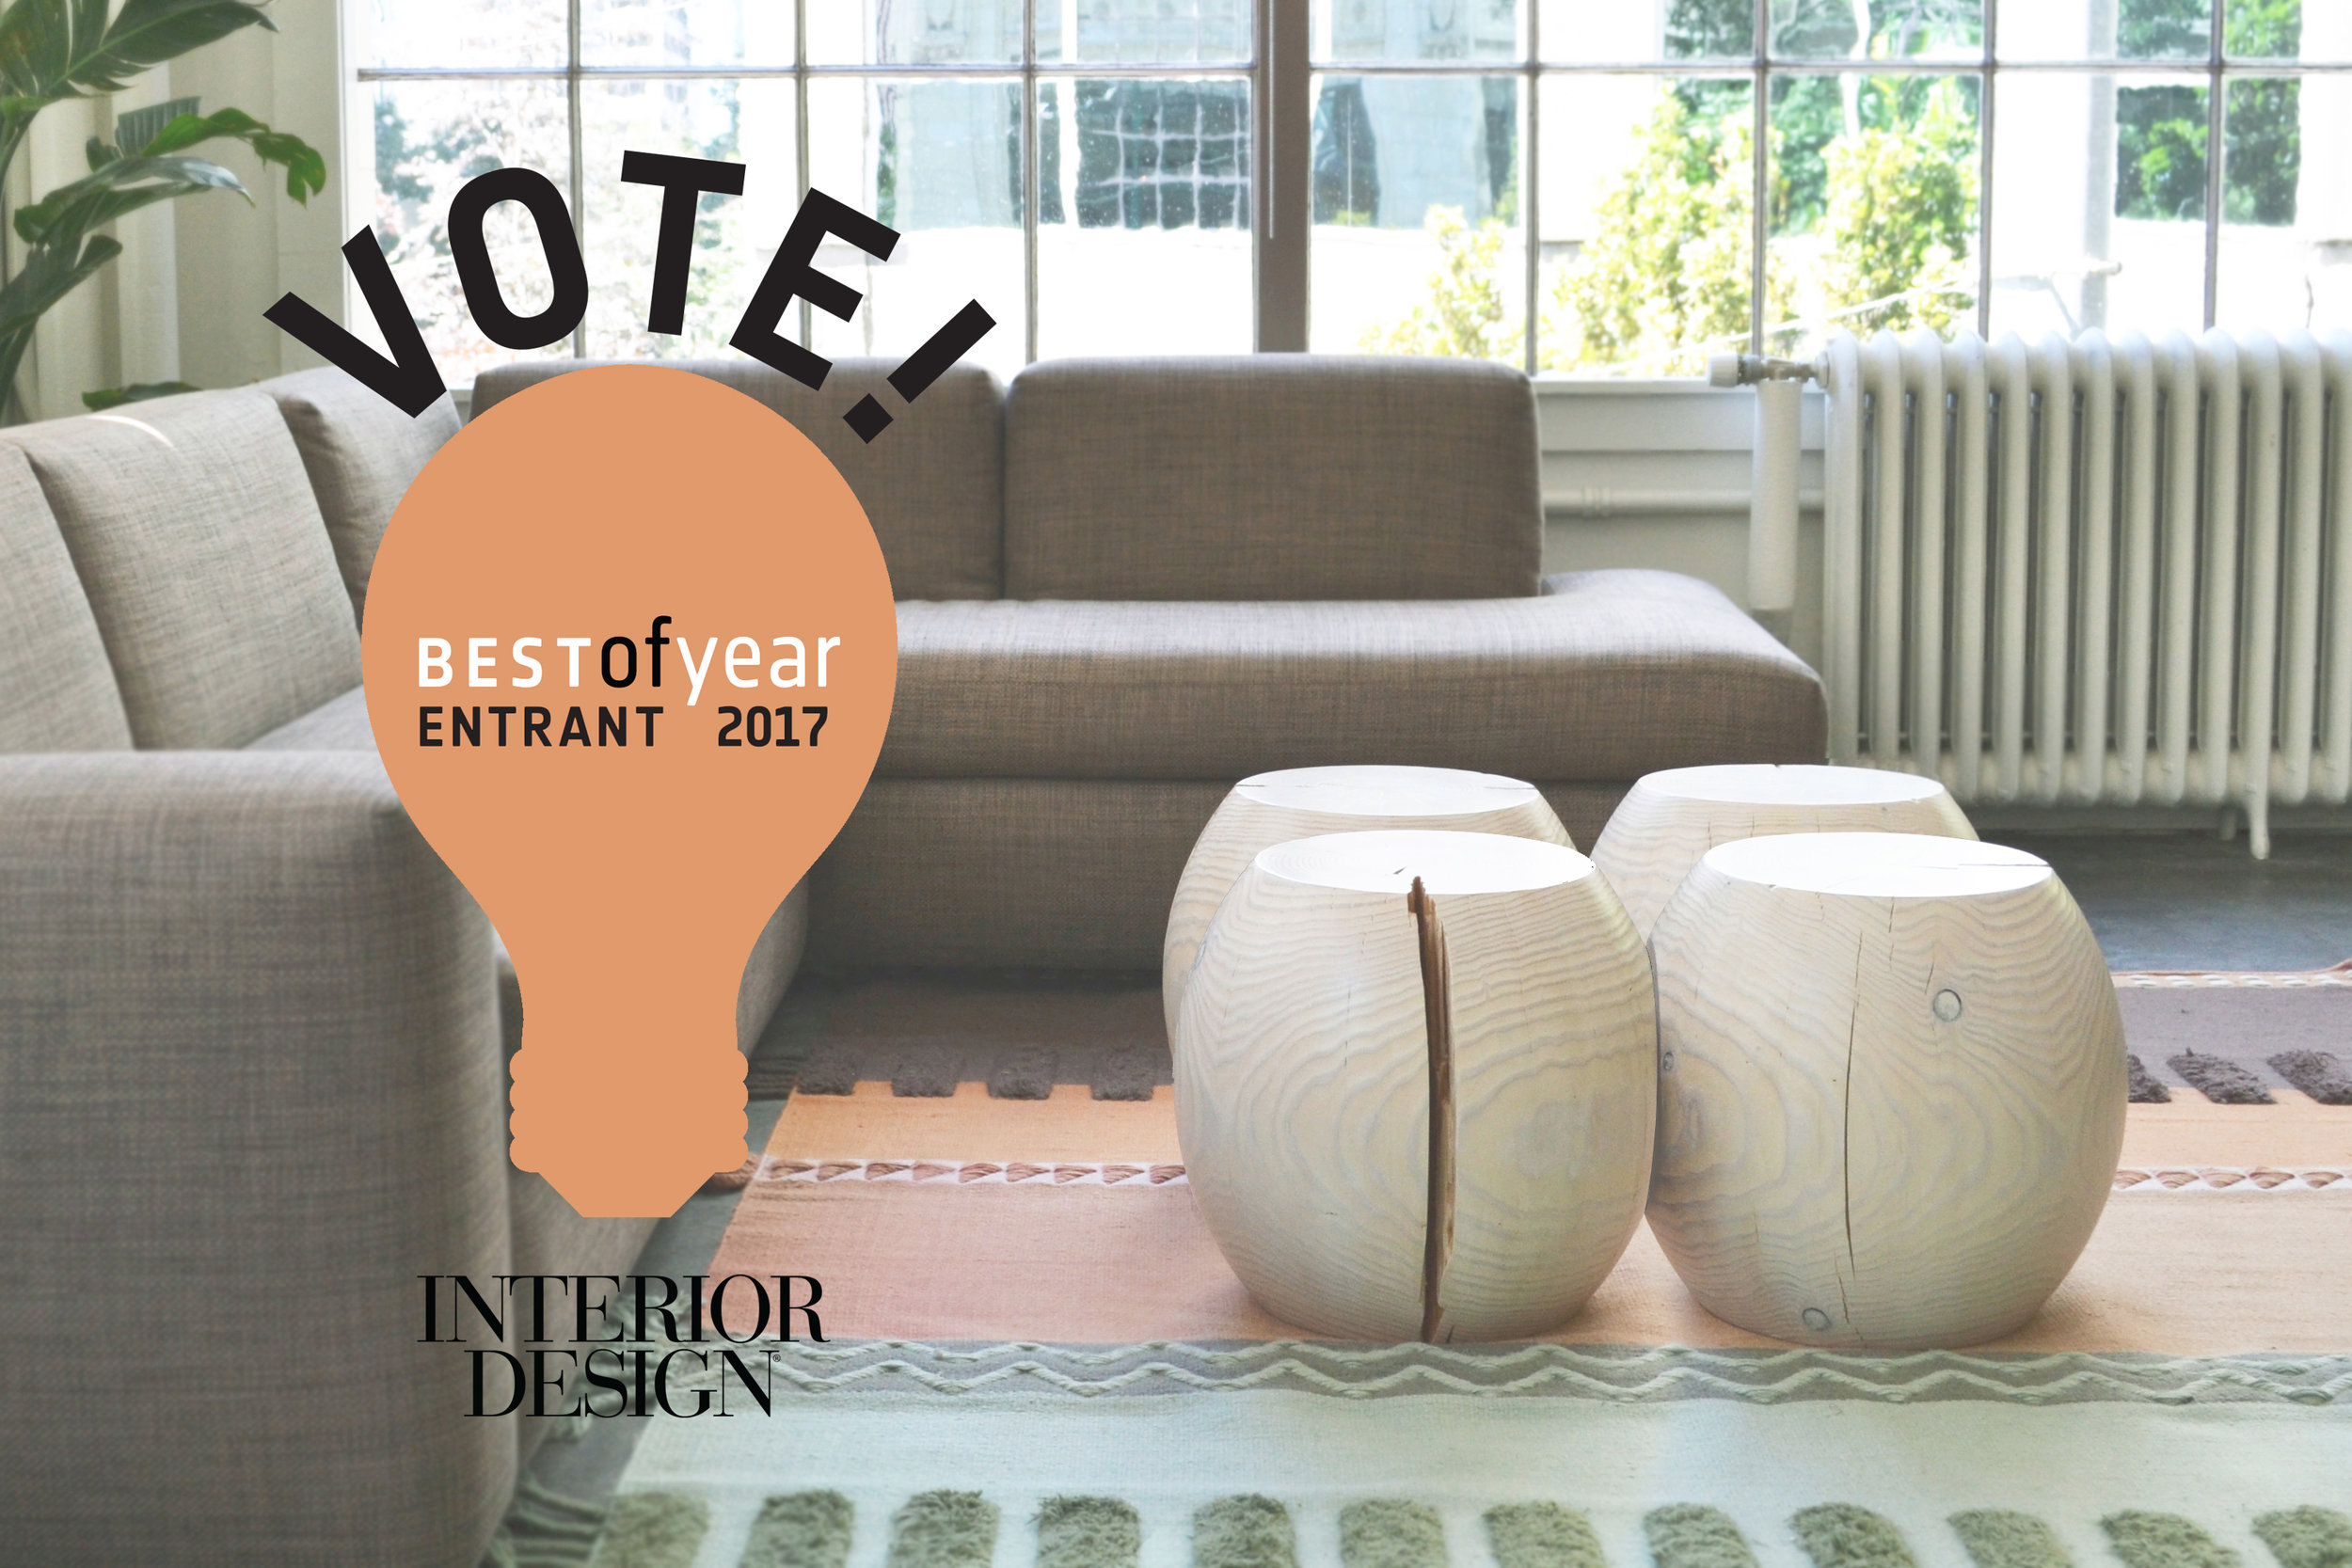 Interior Design Magazine Design Competition